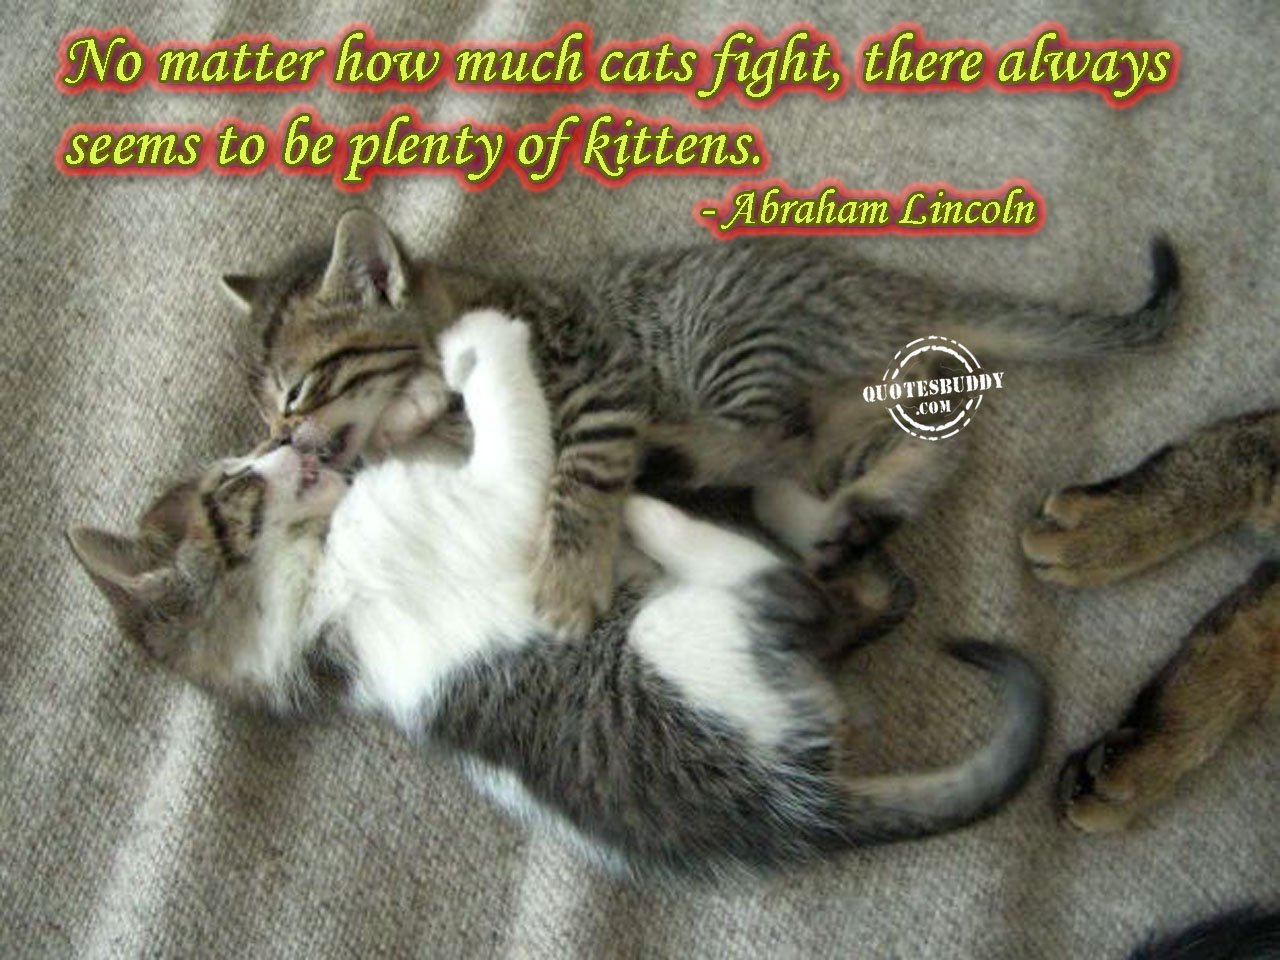 Quotes About Cats And Friendship Kitten Friendsh...